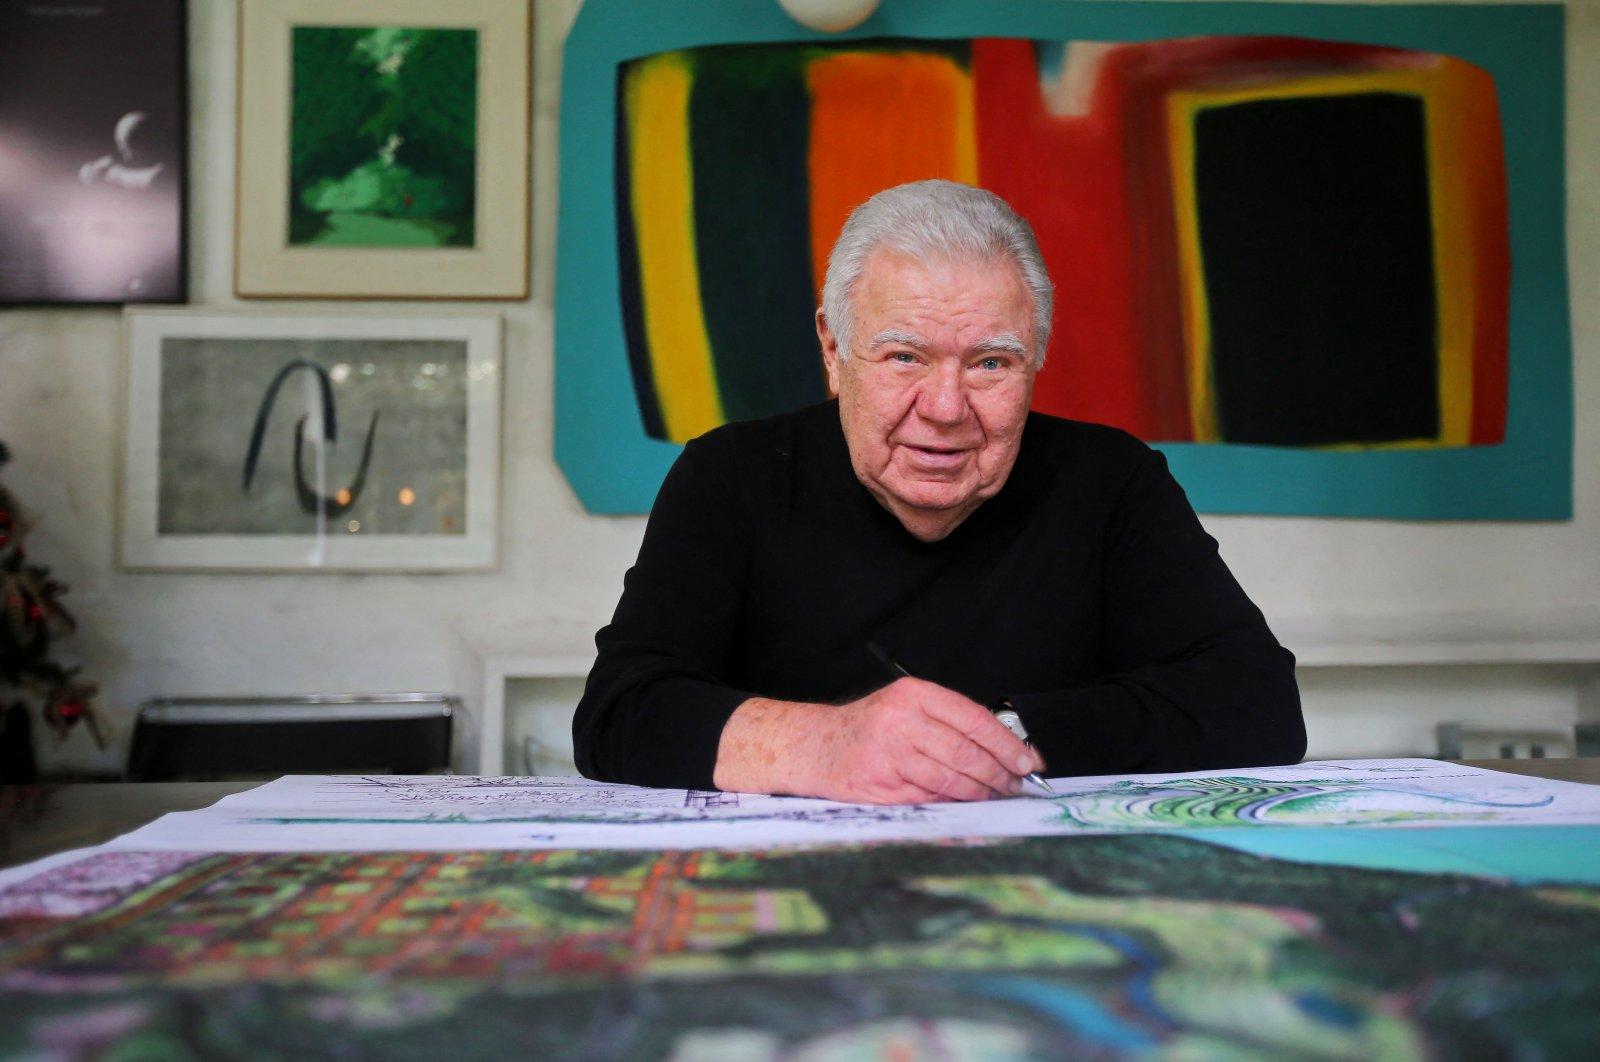 In this file photo, Brazilian former Mayor of Curitiba and former governor of Parana state, architect and urbanist Jaime Lerner, poses during an interview with AFP in Curitiba, Brazil, taken on Nov. 29, 2018. (AFP Photo)